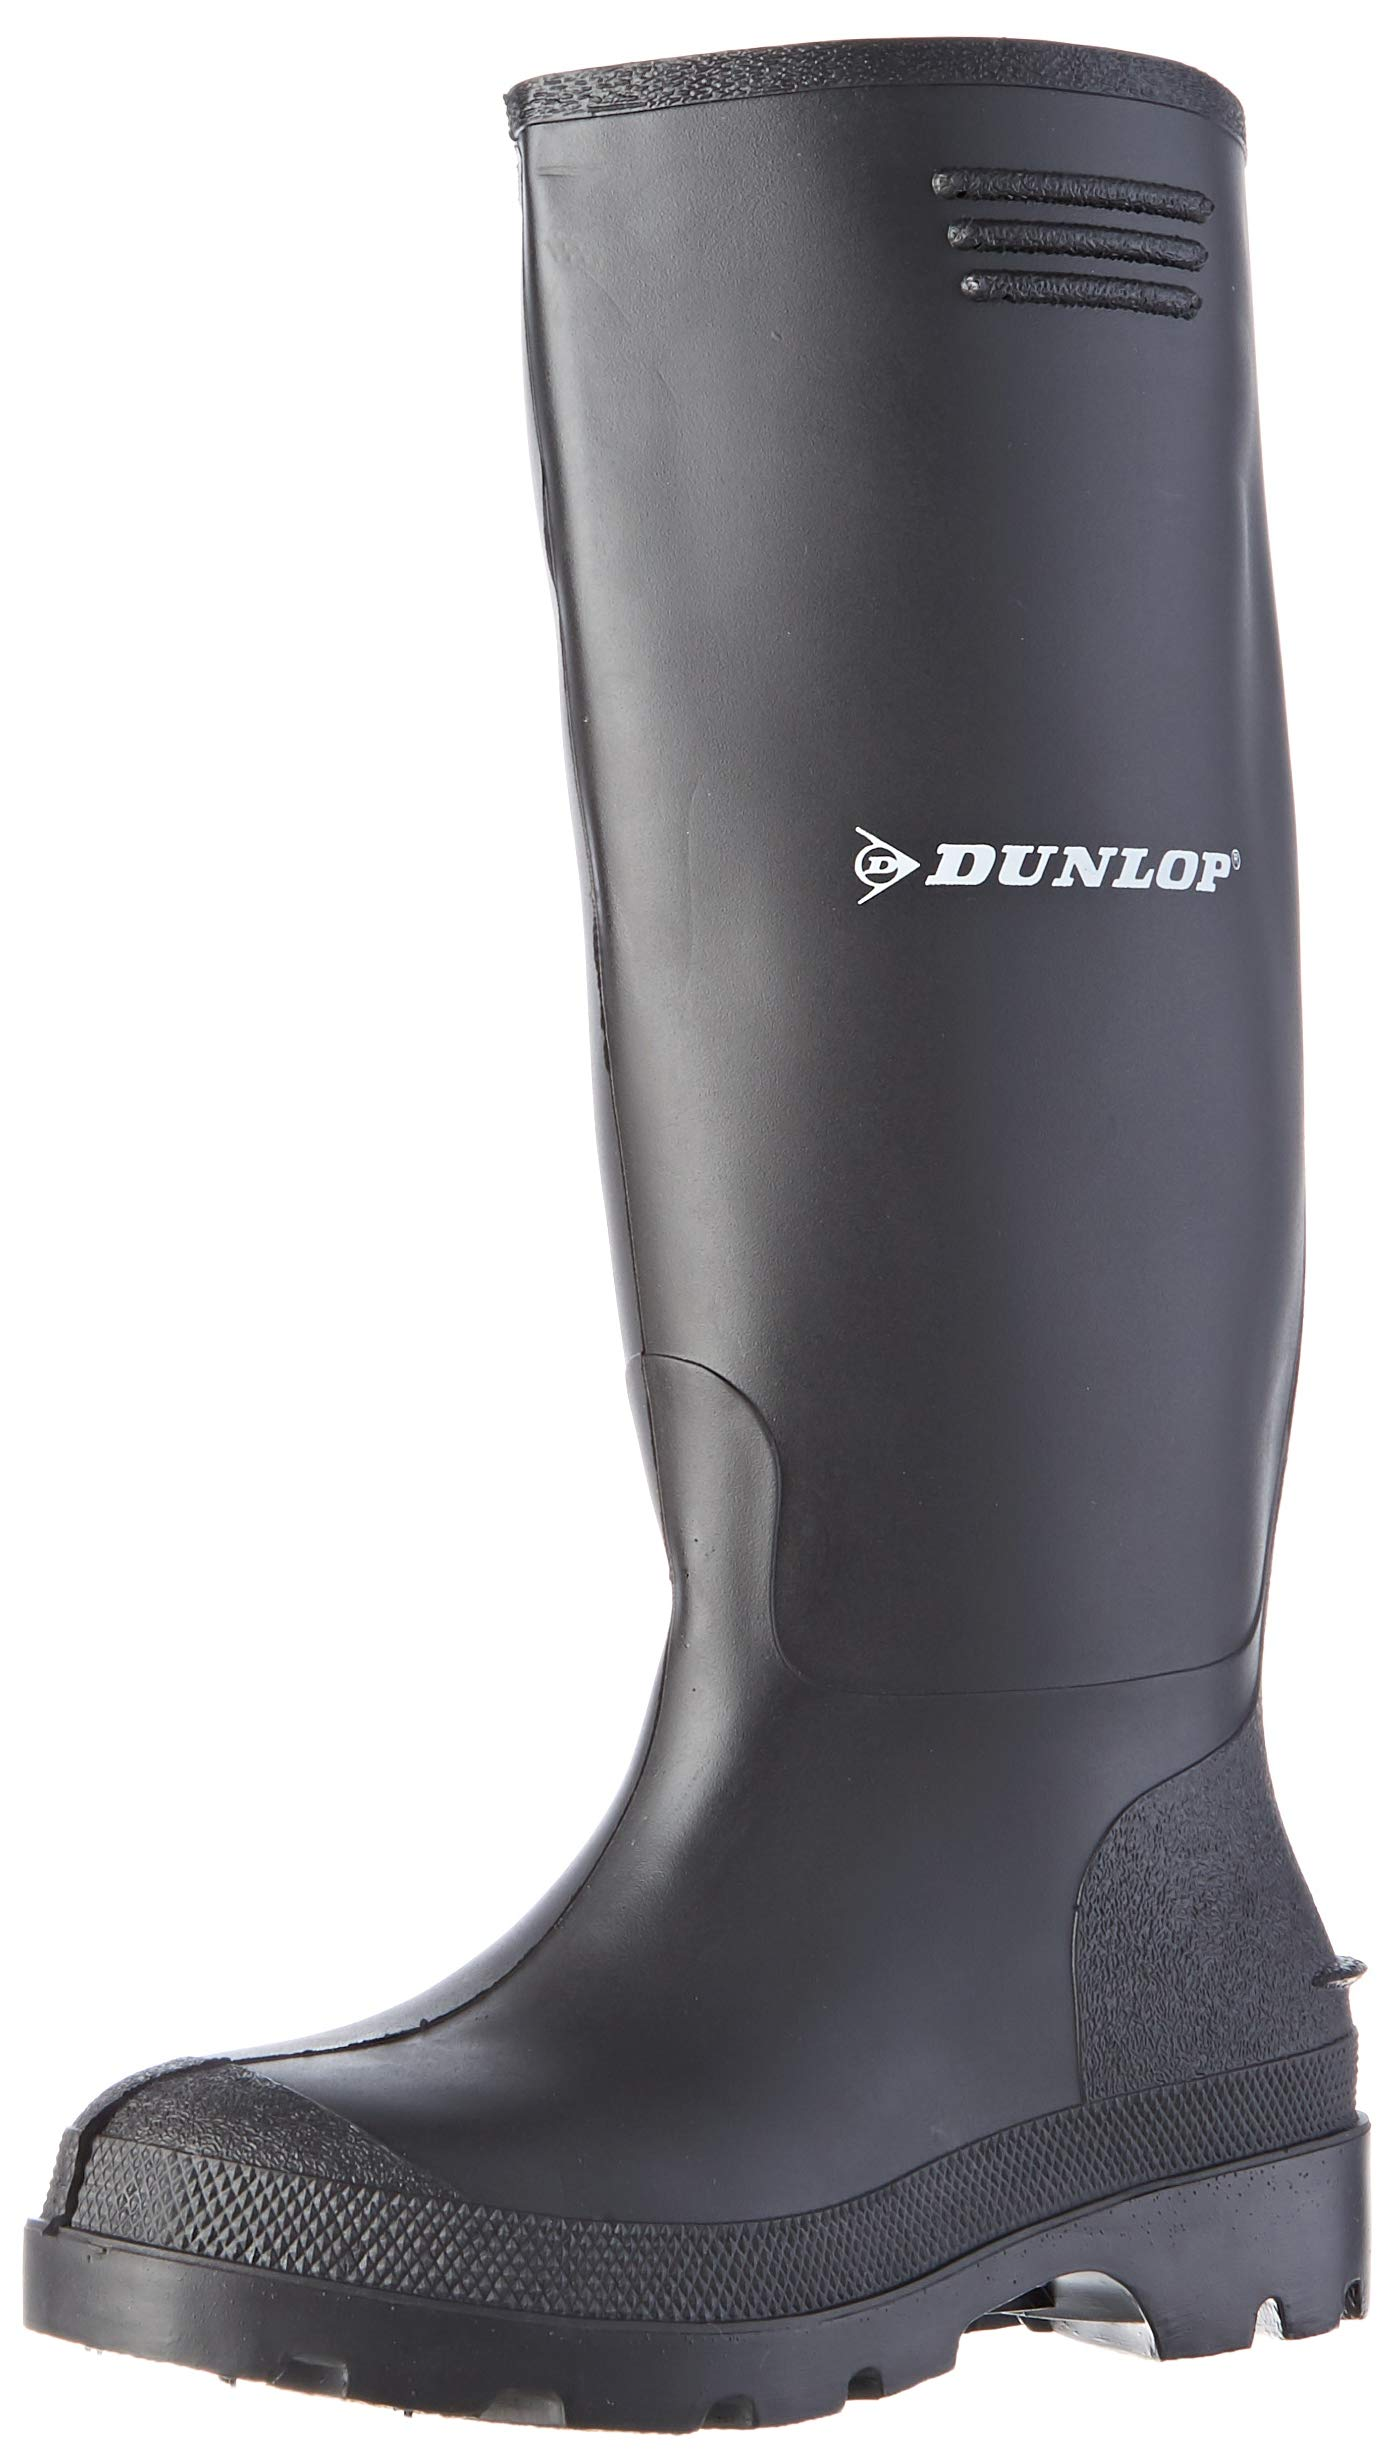 Dunlop Pricemastor PVC Welly / Mens Boots (10 UK) (Black) 1